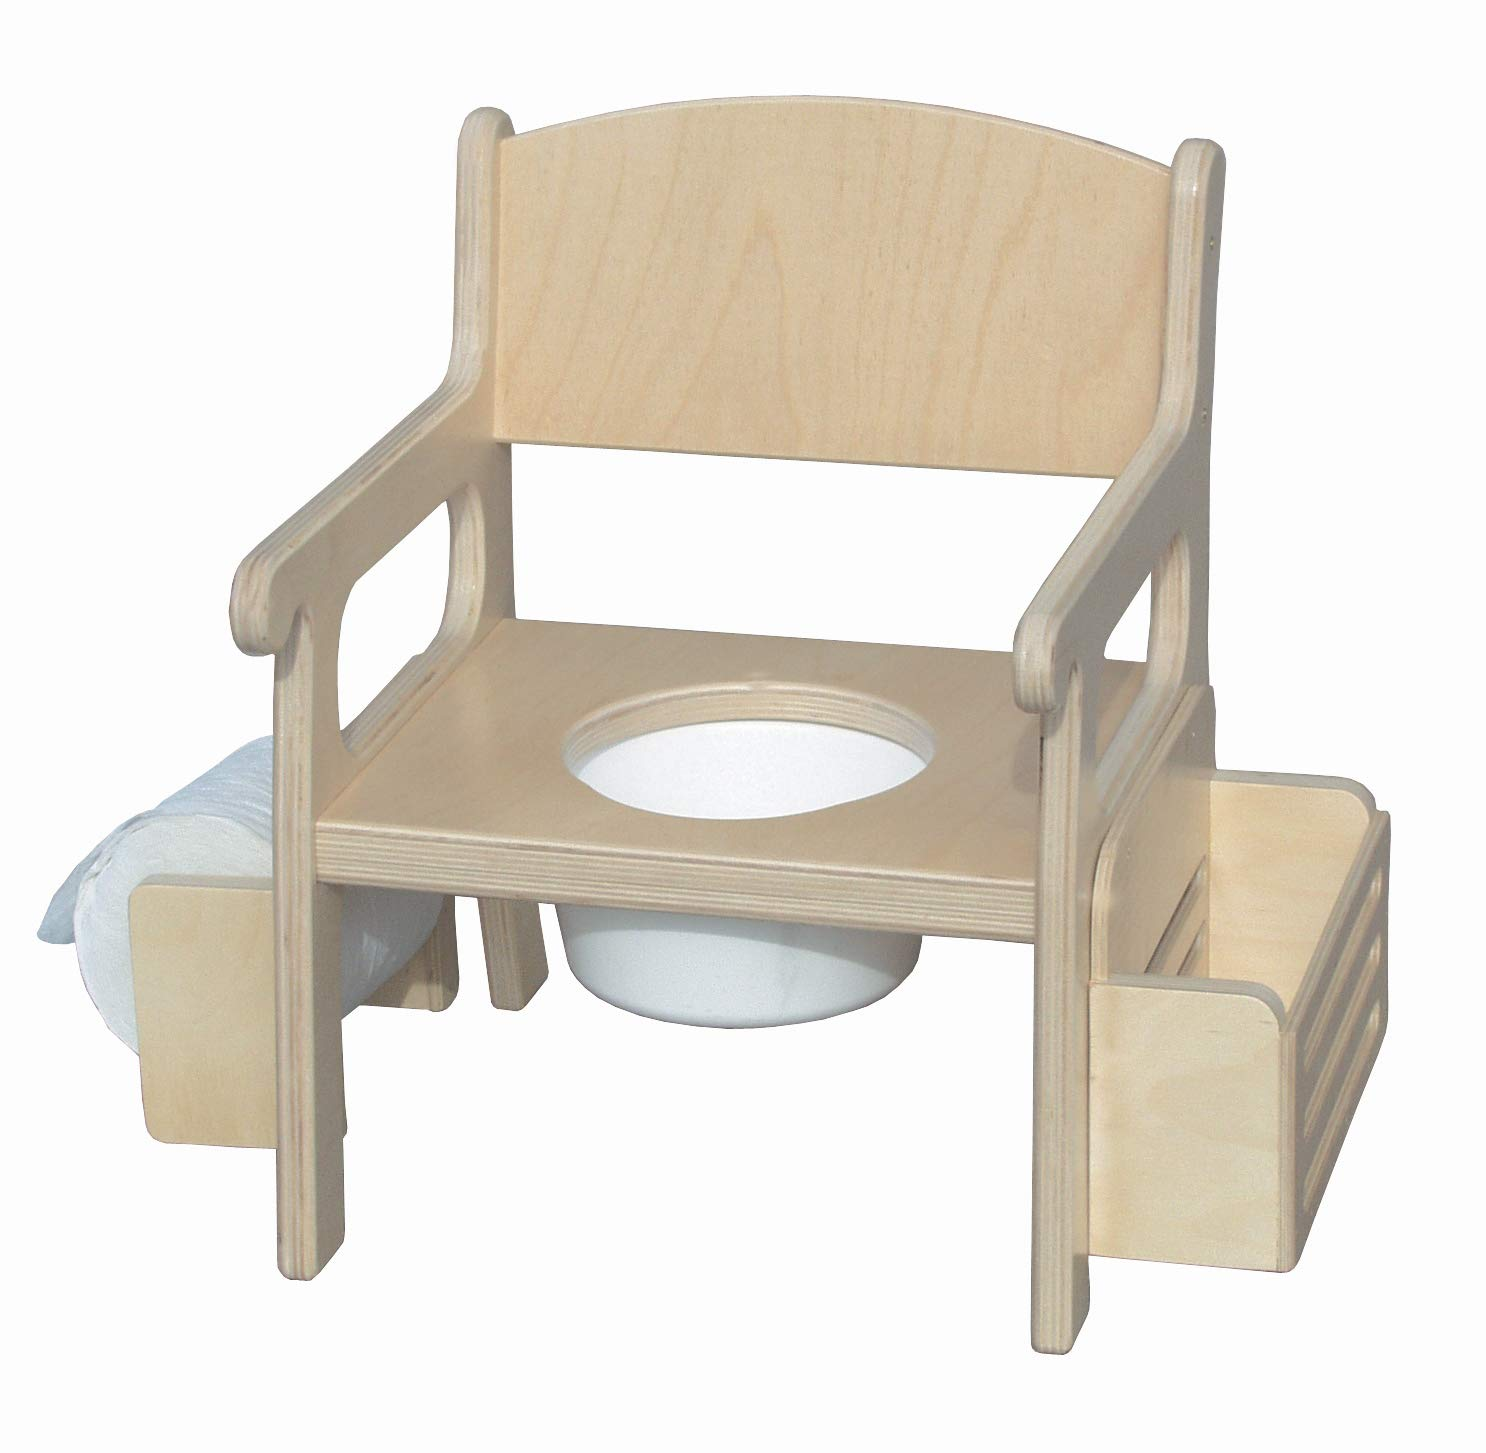 Little Colorado 02728NA Potty Chair with Accessories-Natural by Little Colorado